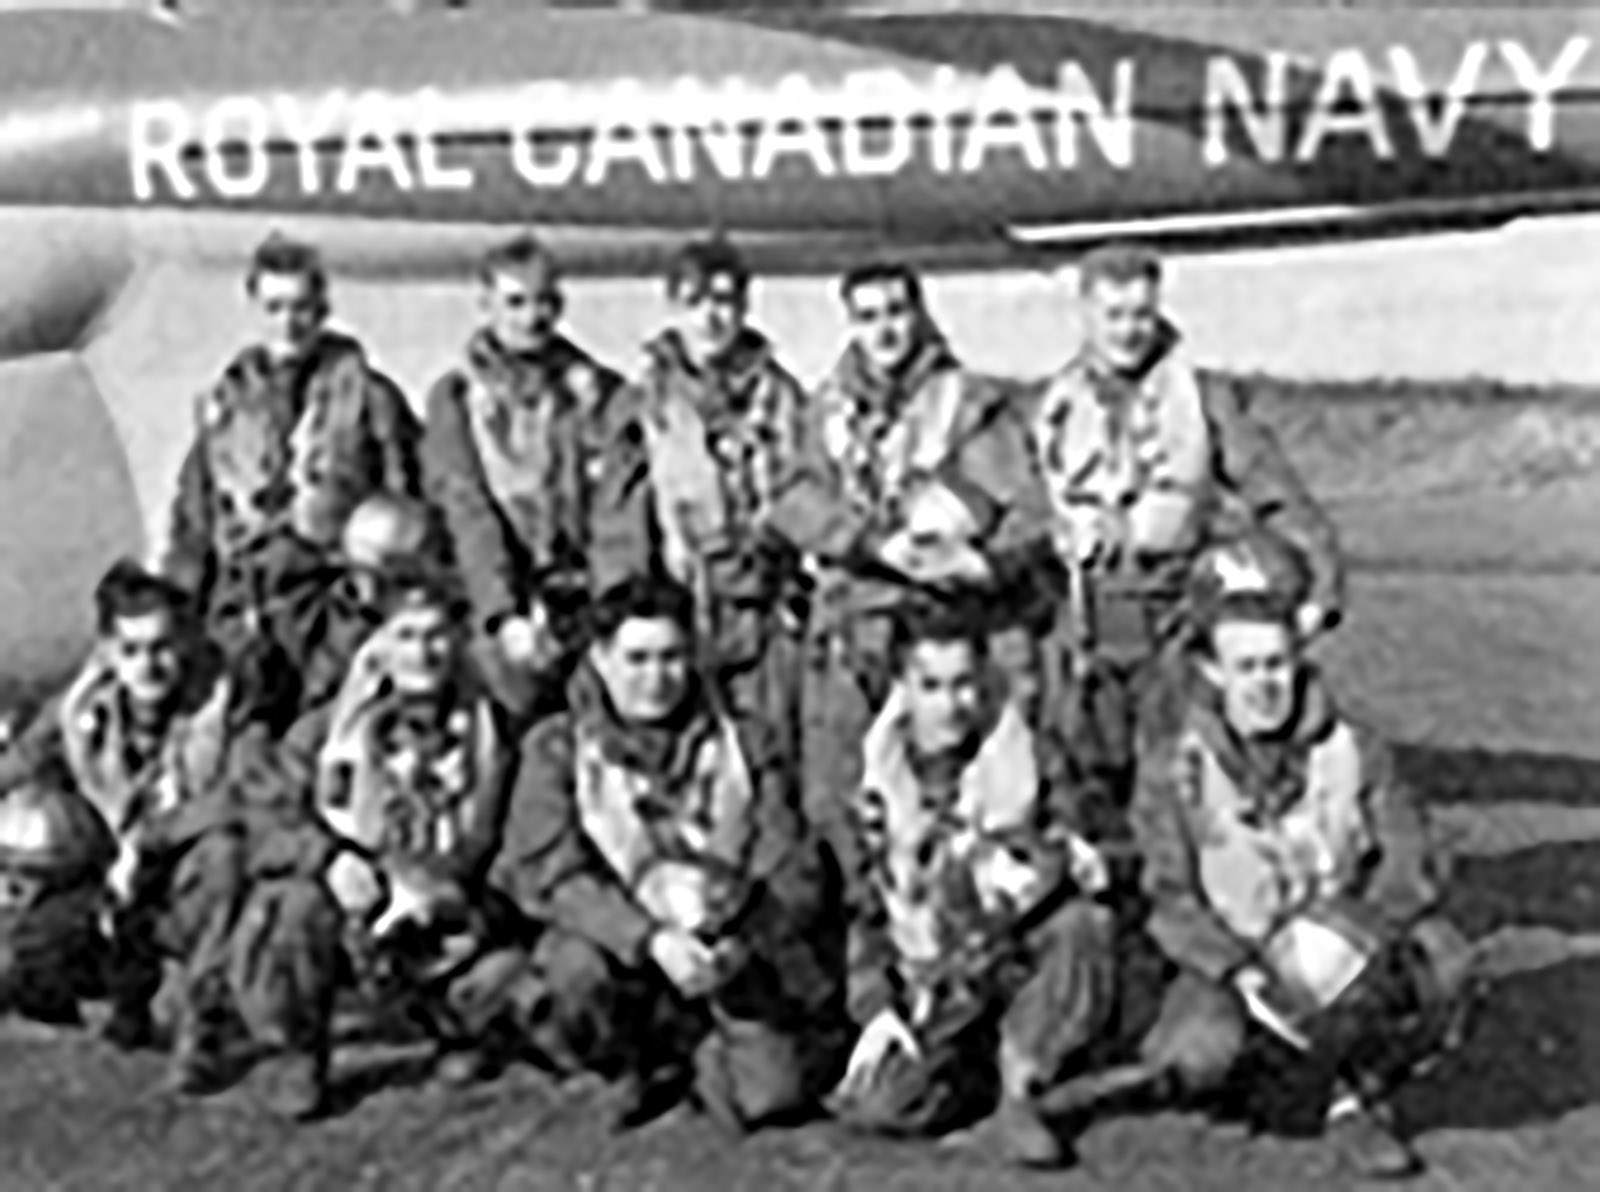 A specialist in anti-submarine techniques, Ted Jamieson instructed sailors aboard the Iroquois during the Korean War. He later joined a helicopter anti-submarine squadron. Jamieson is in the front row, centre, of the photos of the sonar air crewmen of the 50th Squadron. (George C. Apps / Library and Archives Canada / PA-146296)